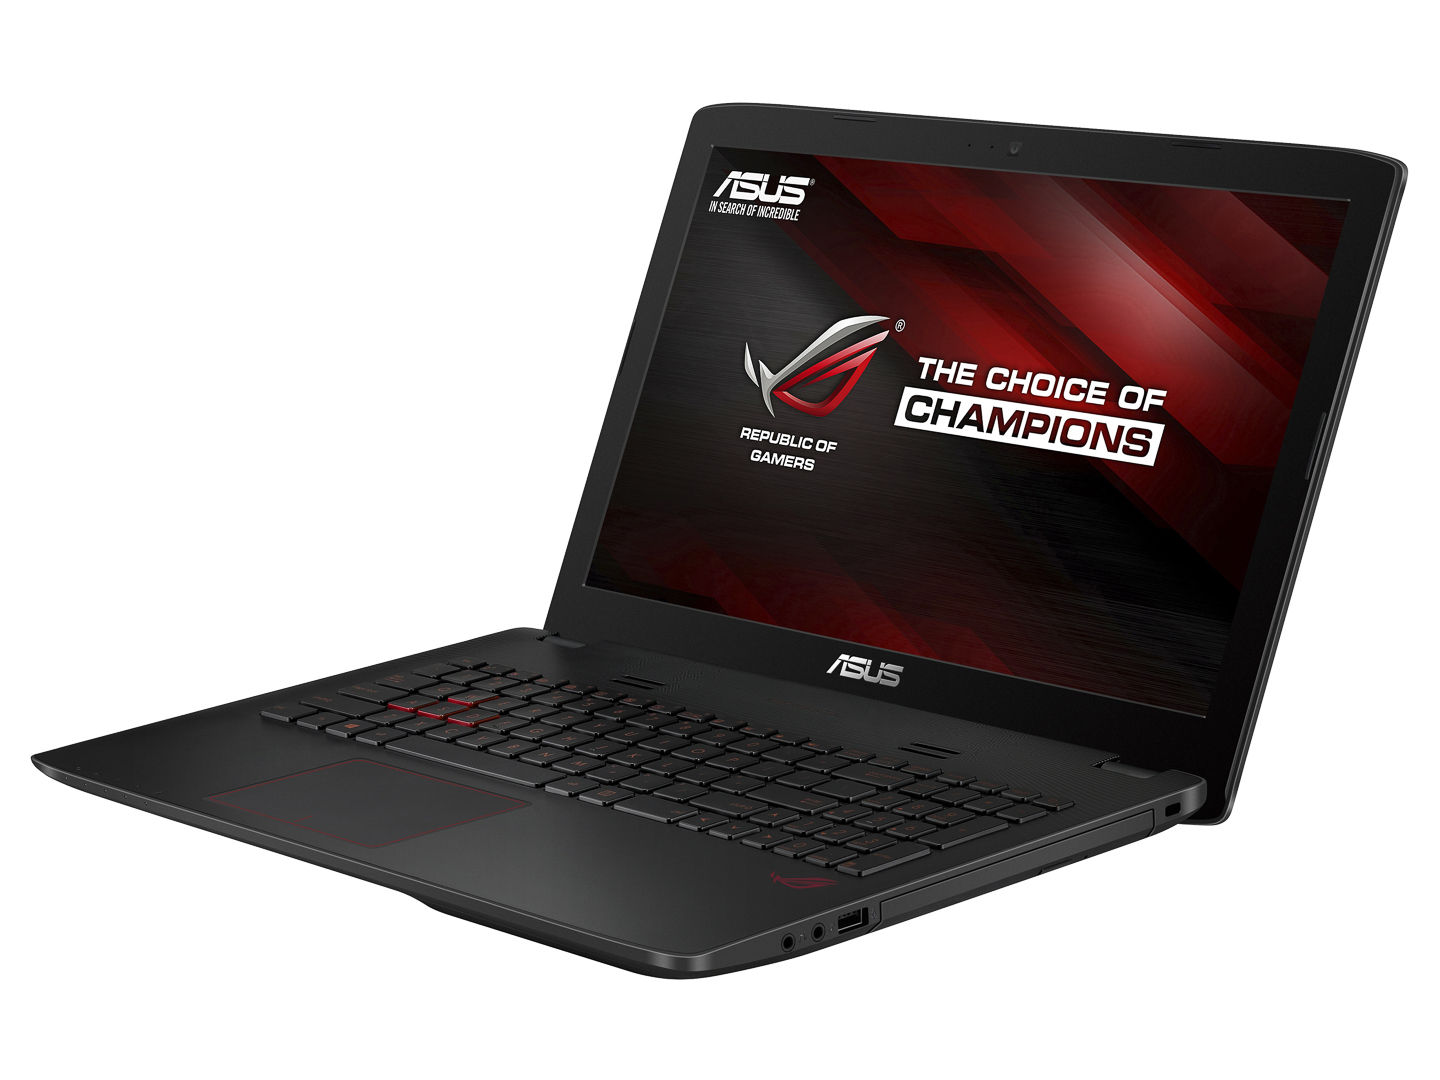 Is acer and asus is the same company?